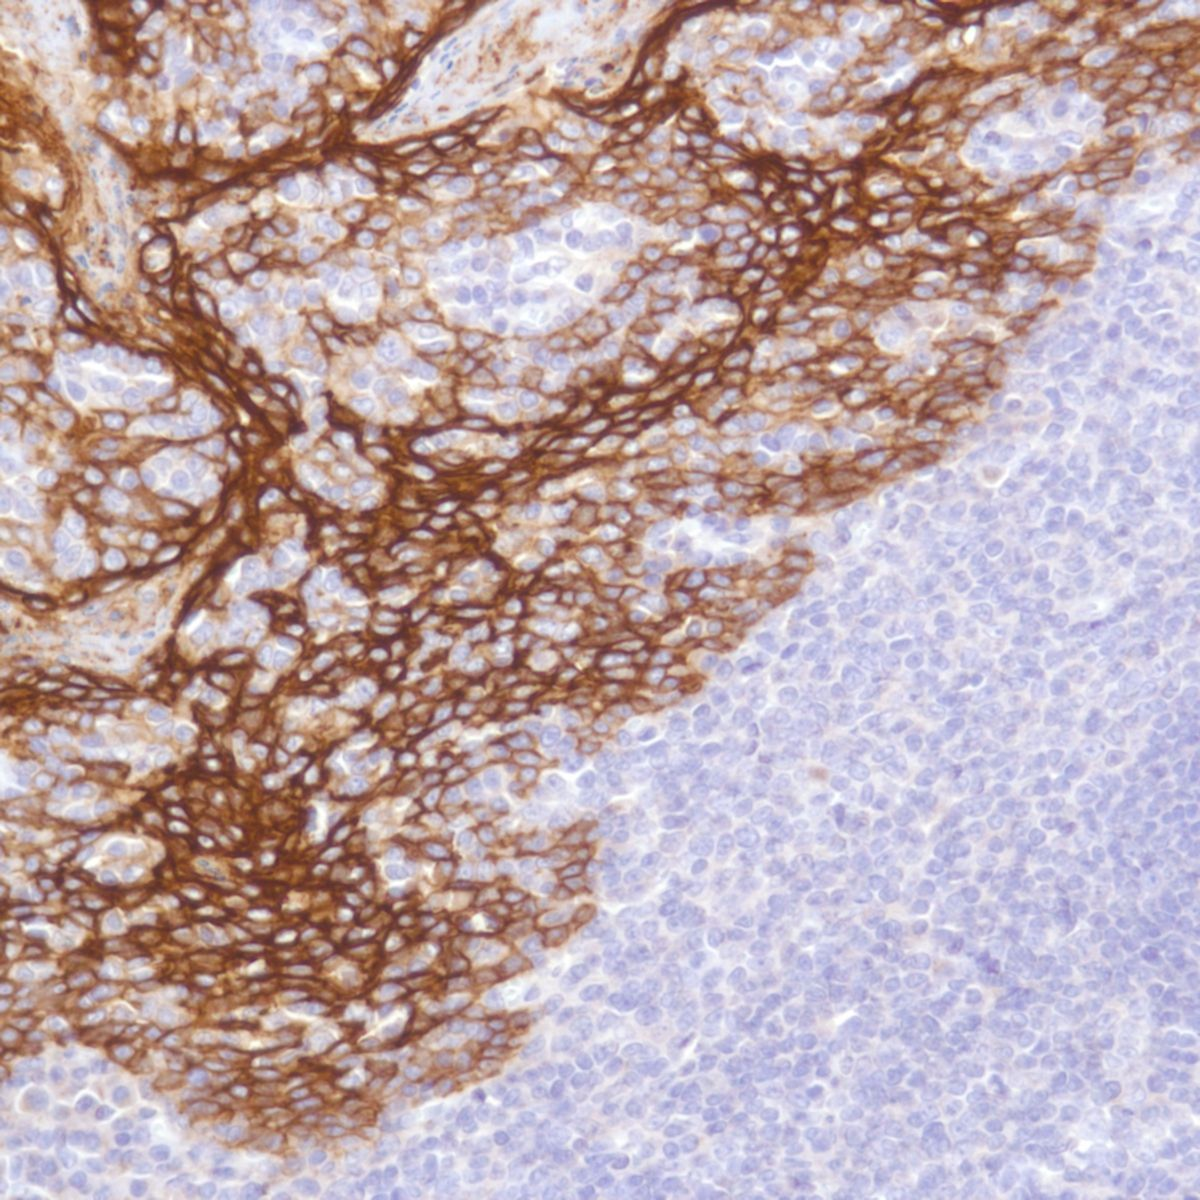 Human Tonsil stained with anti-TROP-2 (SP294) antibody